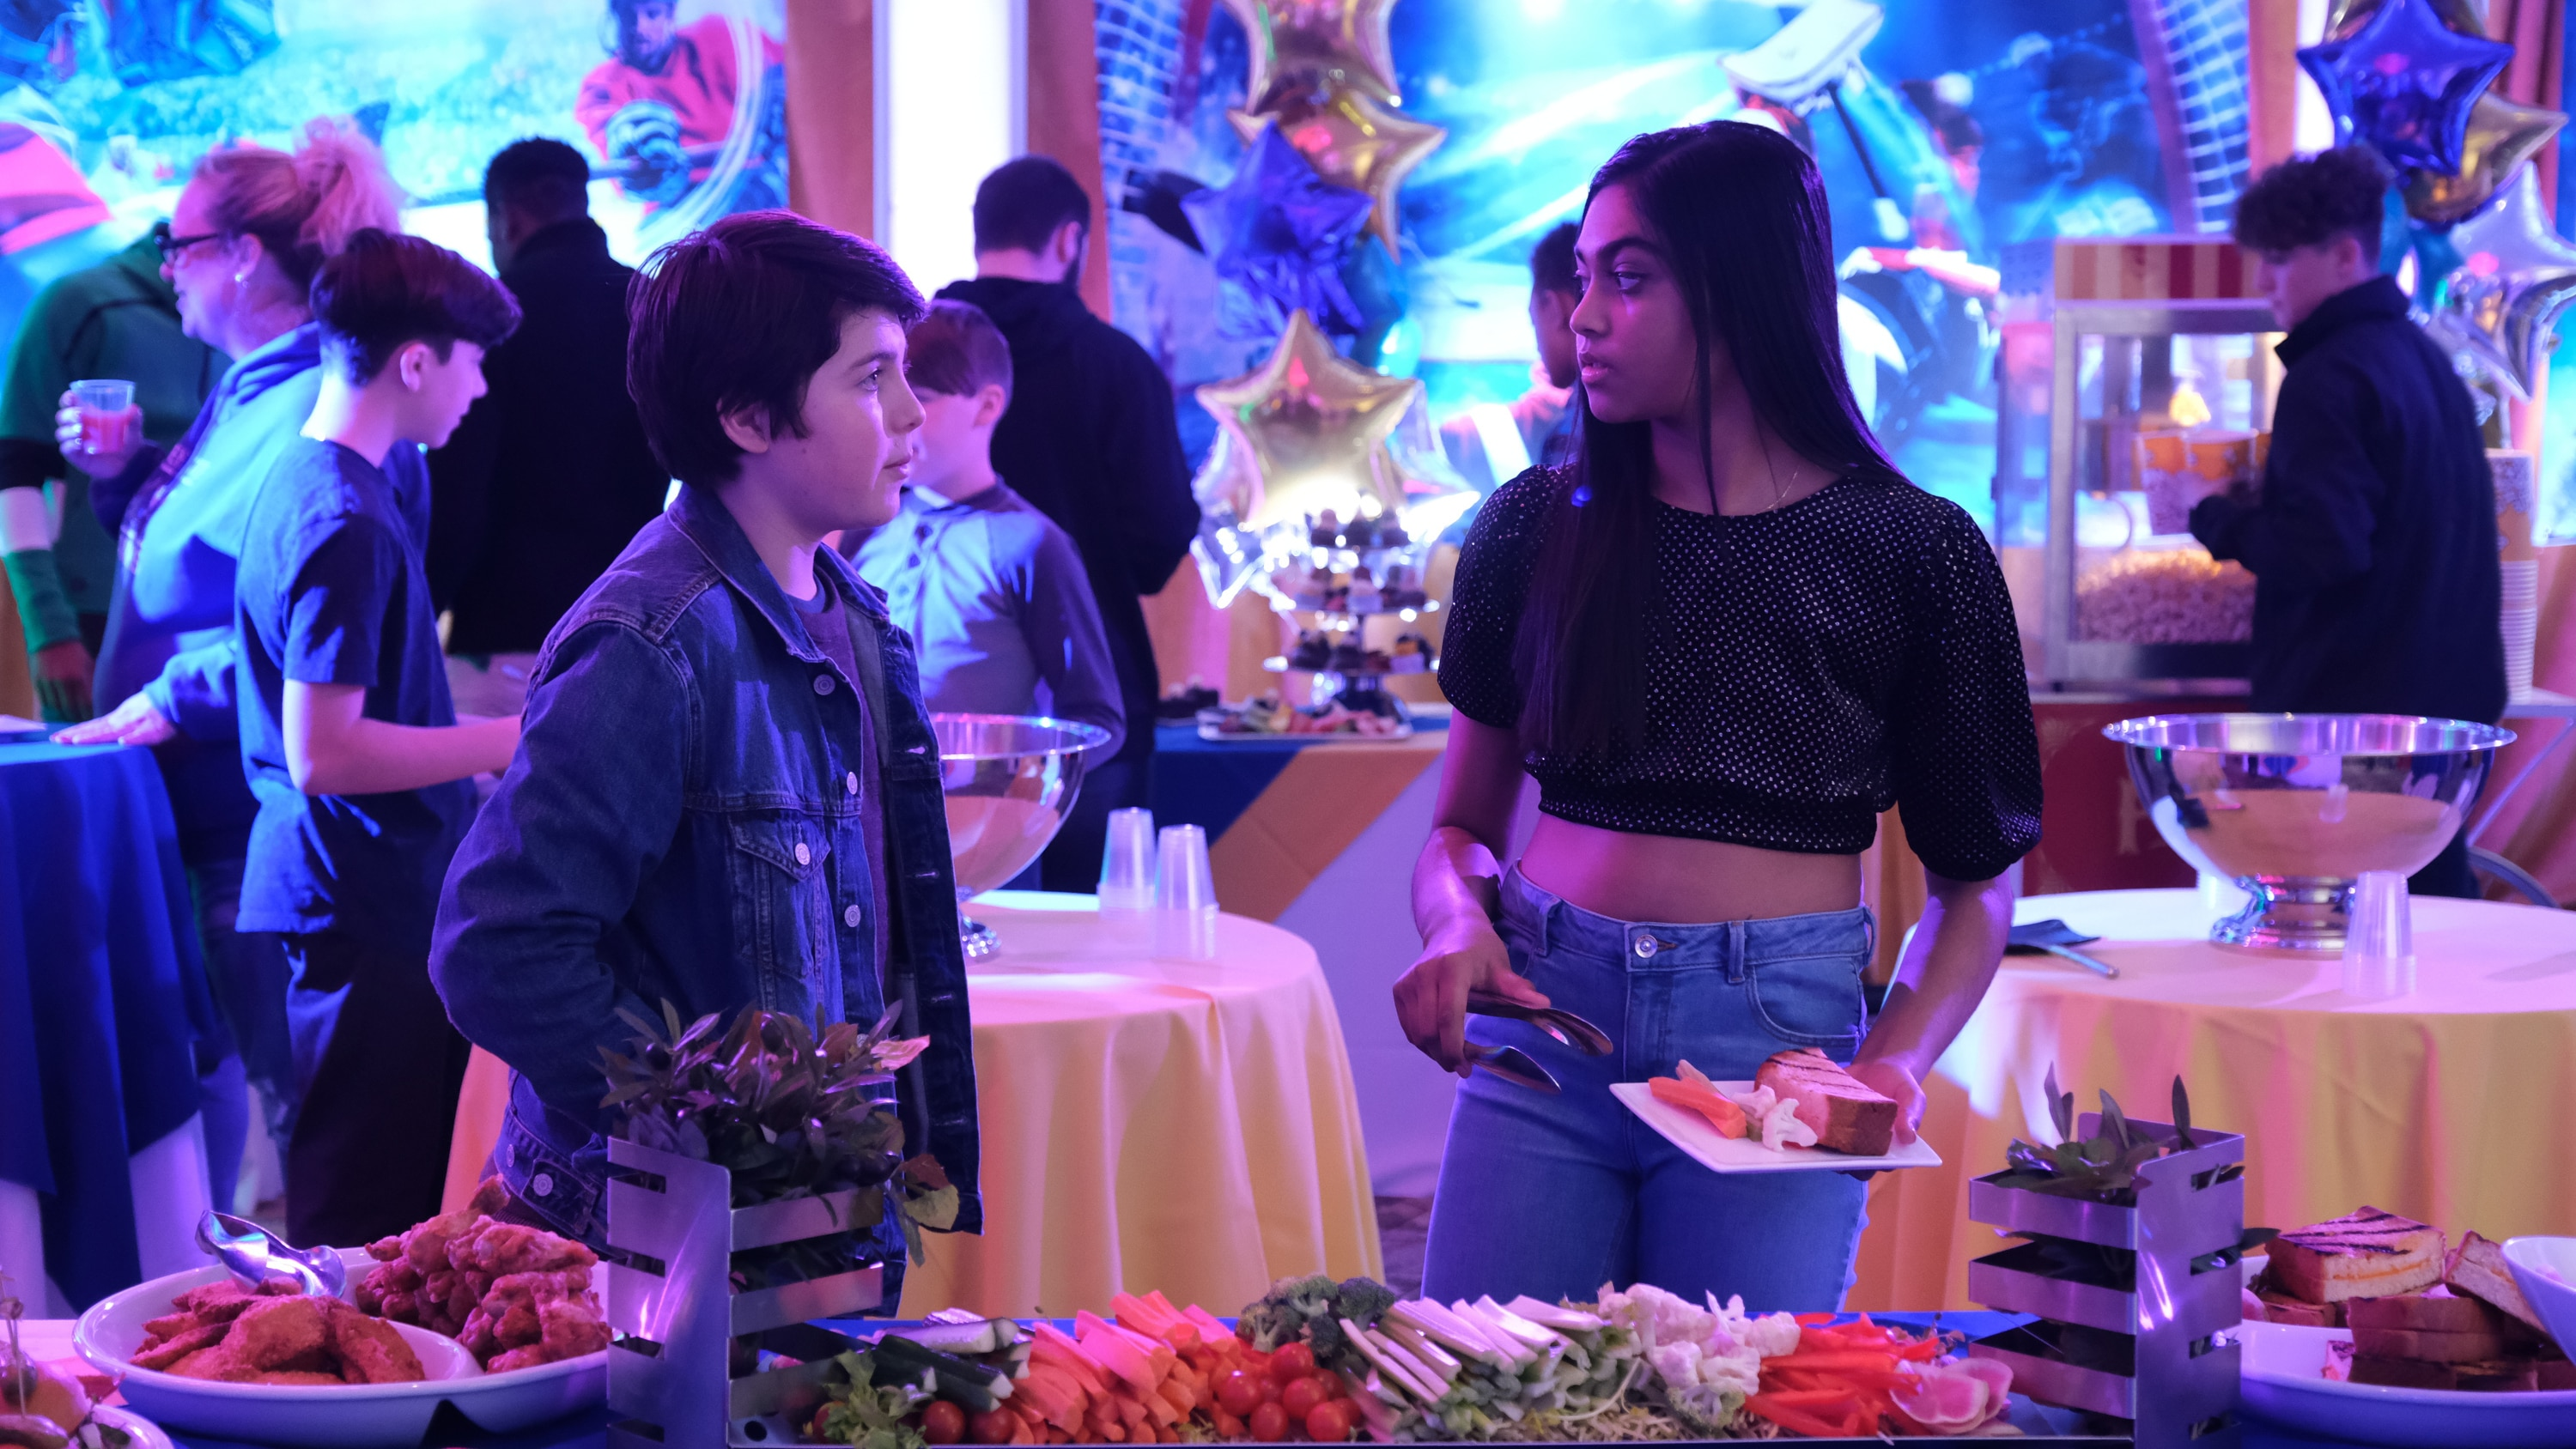 """THE MIGHTY DUCKS: GAME CHANGERS - """"Head Games"""" - Don't Bothers road trip to States! Teen drama unfolds, Alex is left behind, Bombay reveals a secret.  (Disney/Liane Hentscher) BRADY NOON, SWAYAM BHATIA"""